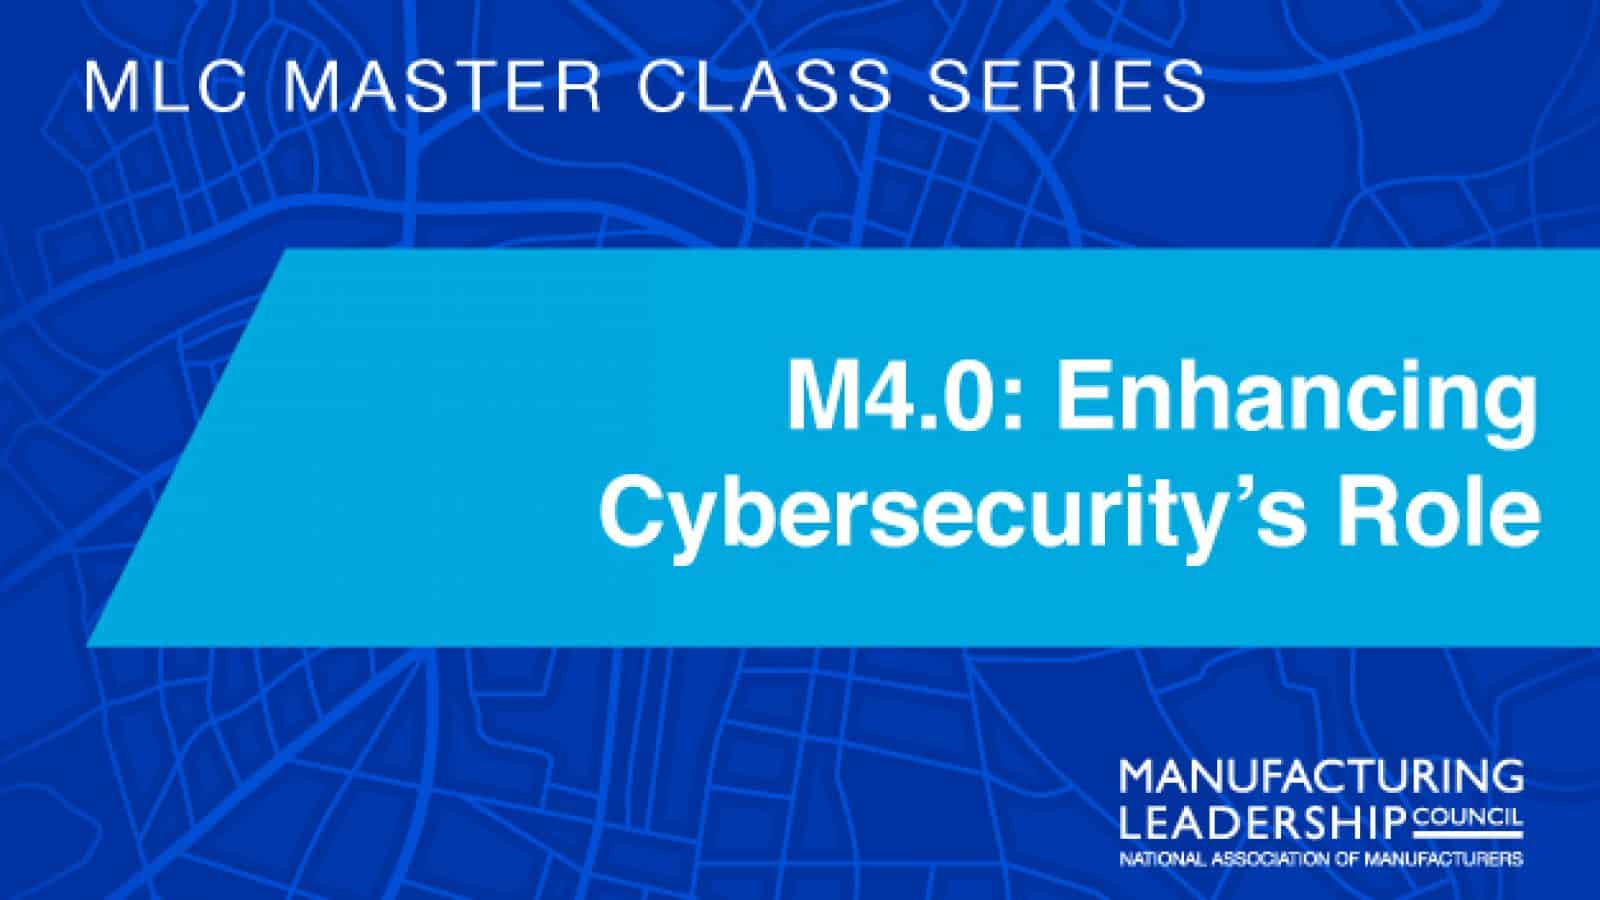 M4.0: Enhancing Cybersecurity's Role